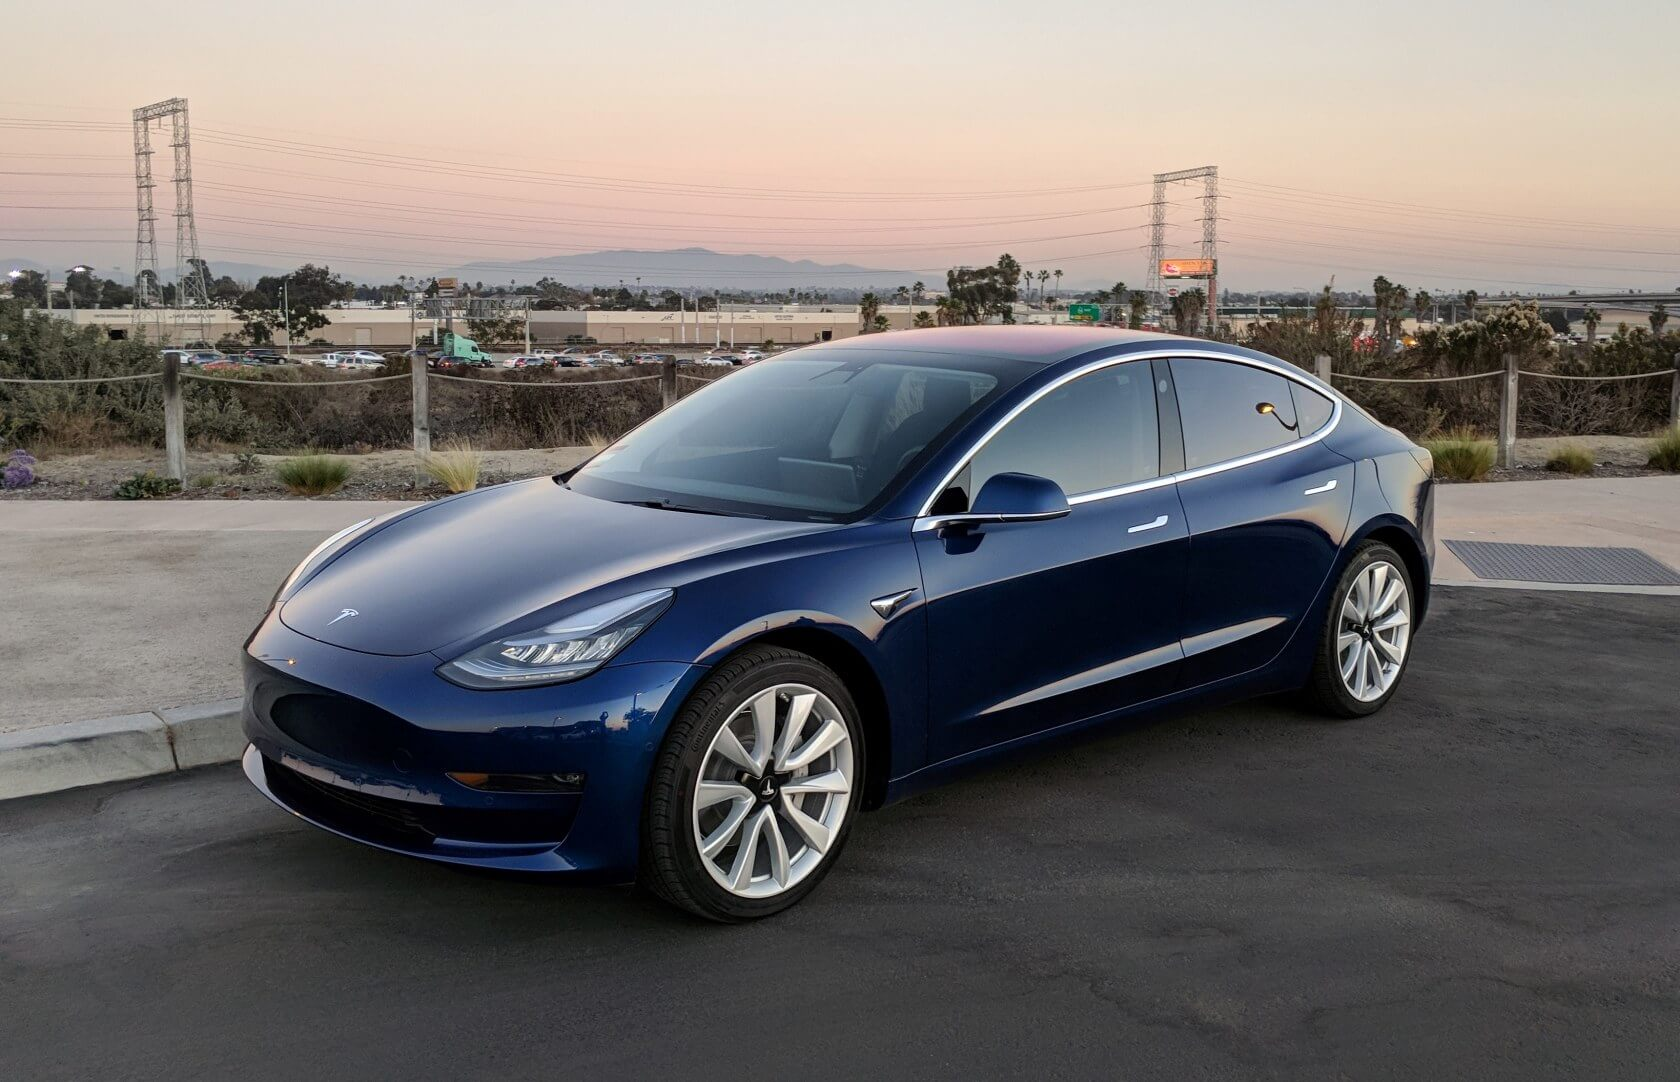 Tesla has been planning to launch a $35,000 version of their mid-range Model 3 sedan for years now, but it has always been unable to deliver on its promises ...